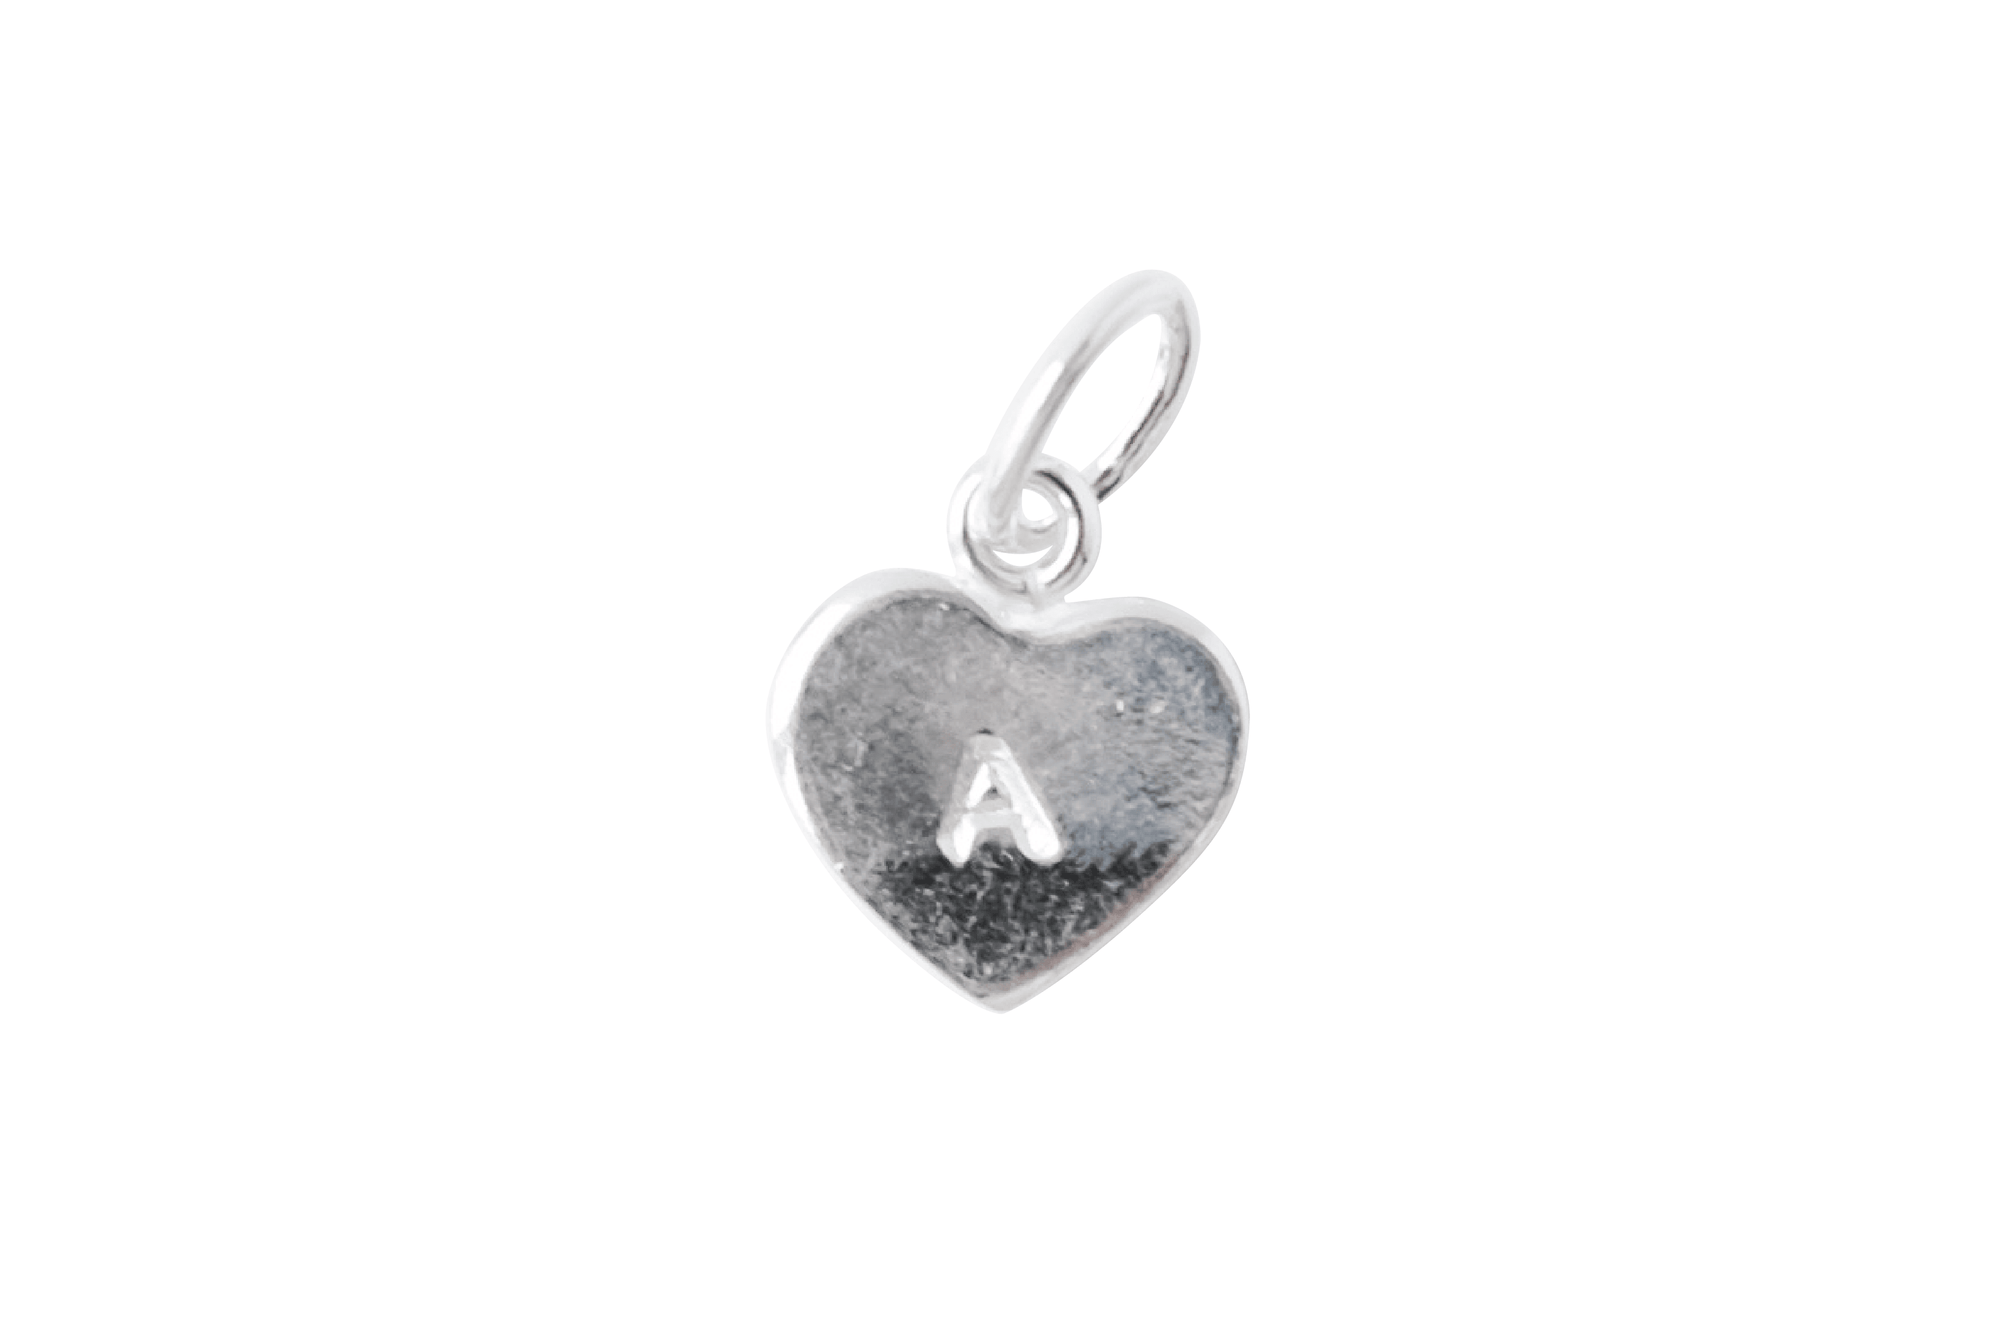 Customizable Stamped Tiny Heart Charm